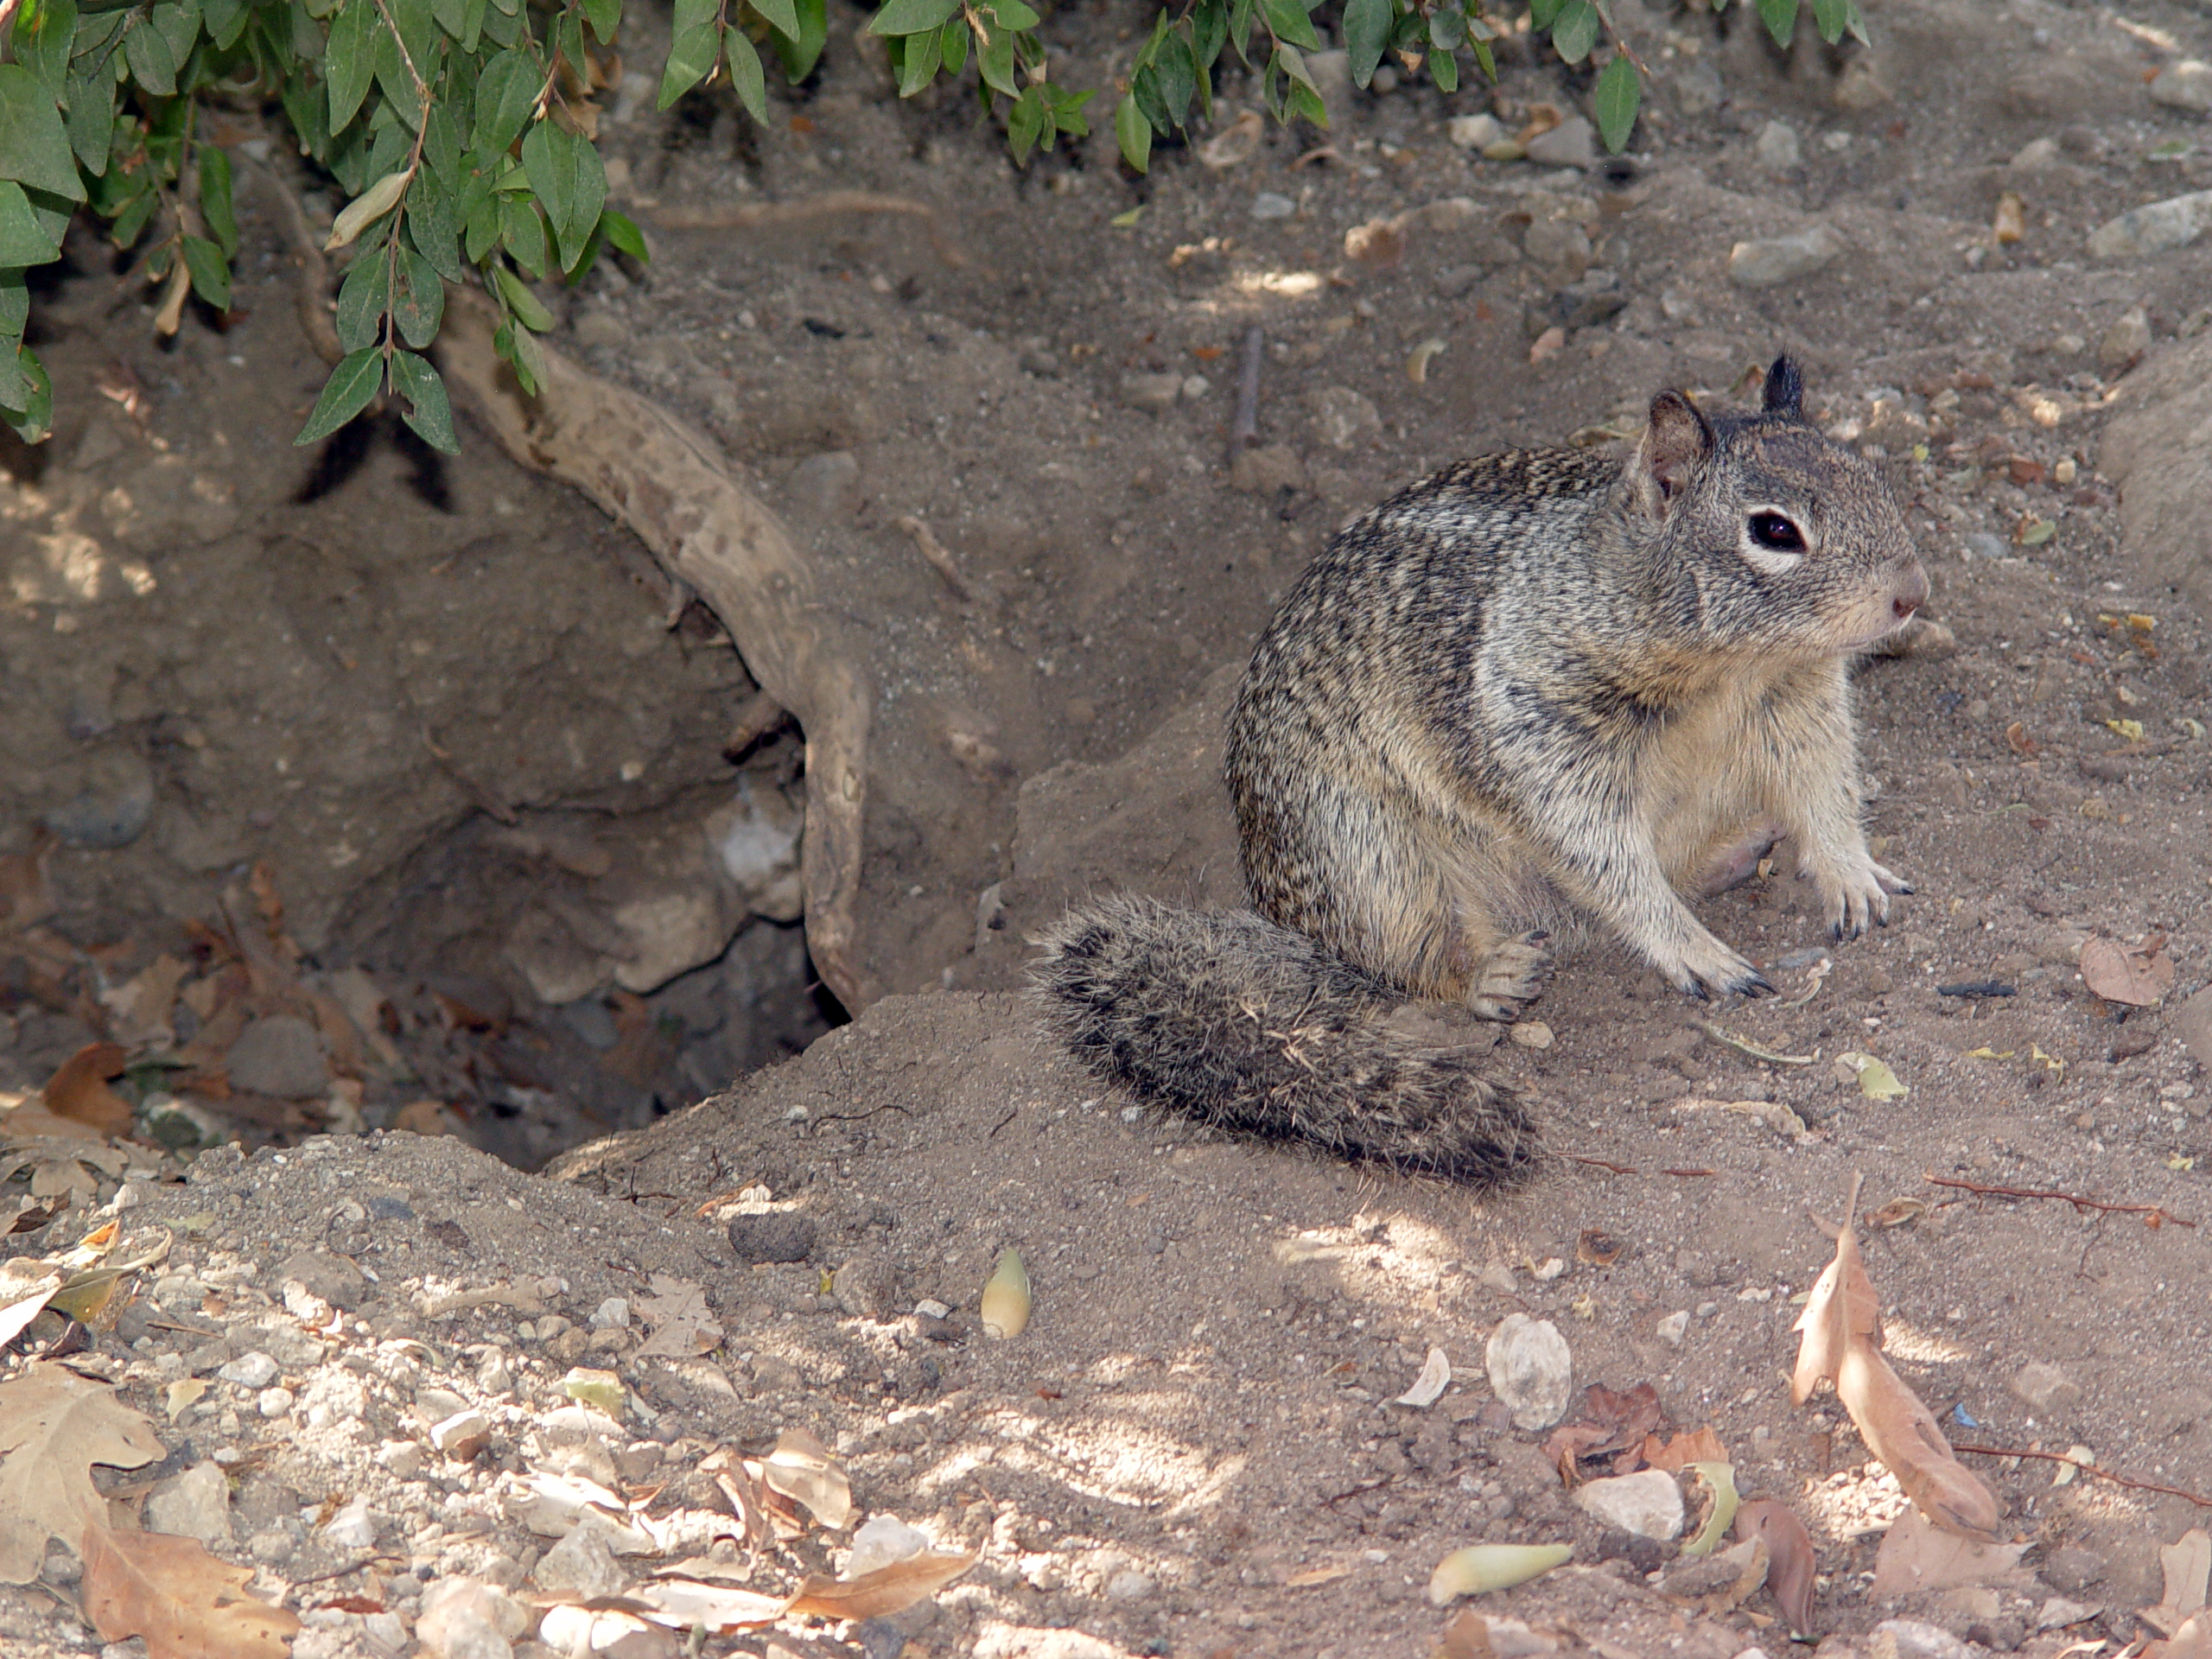 What leads Hibernating squirrels to live for months without water?